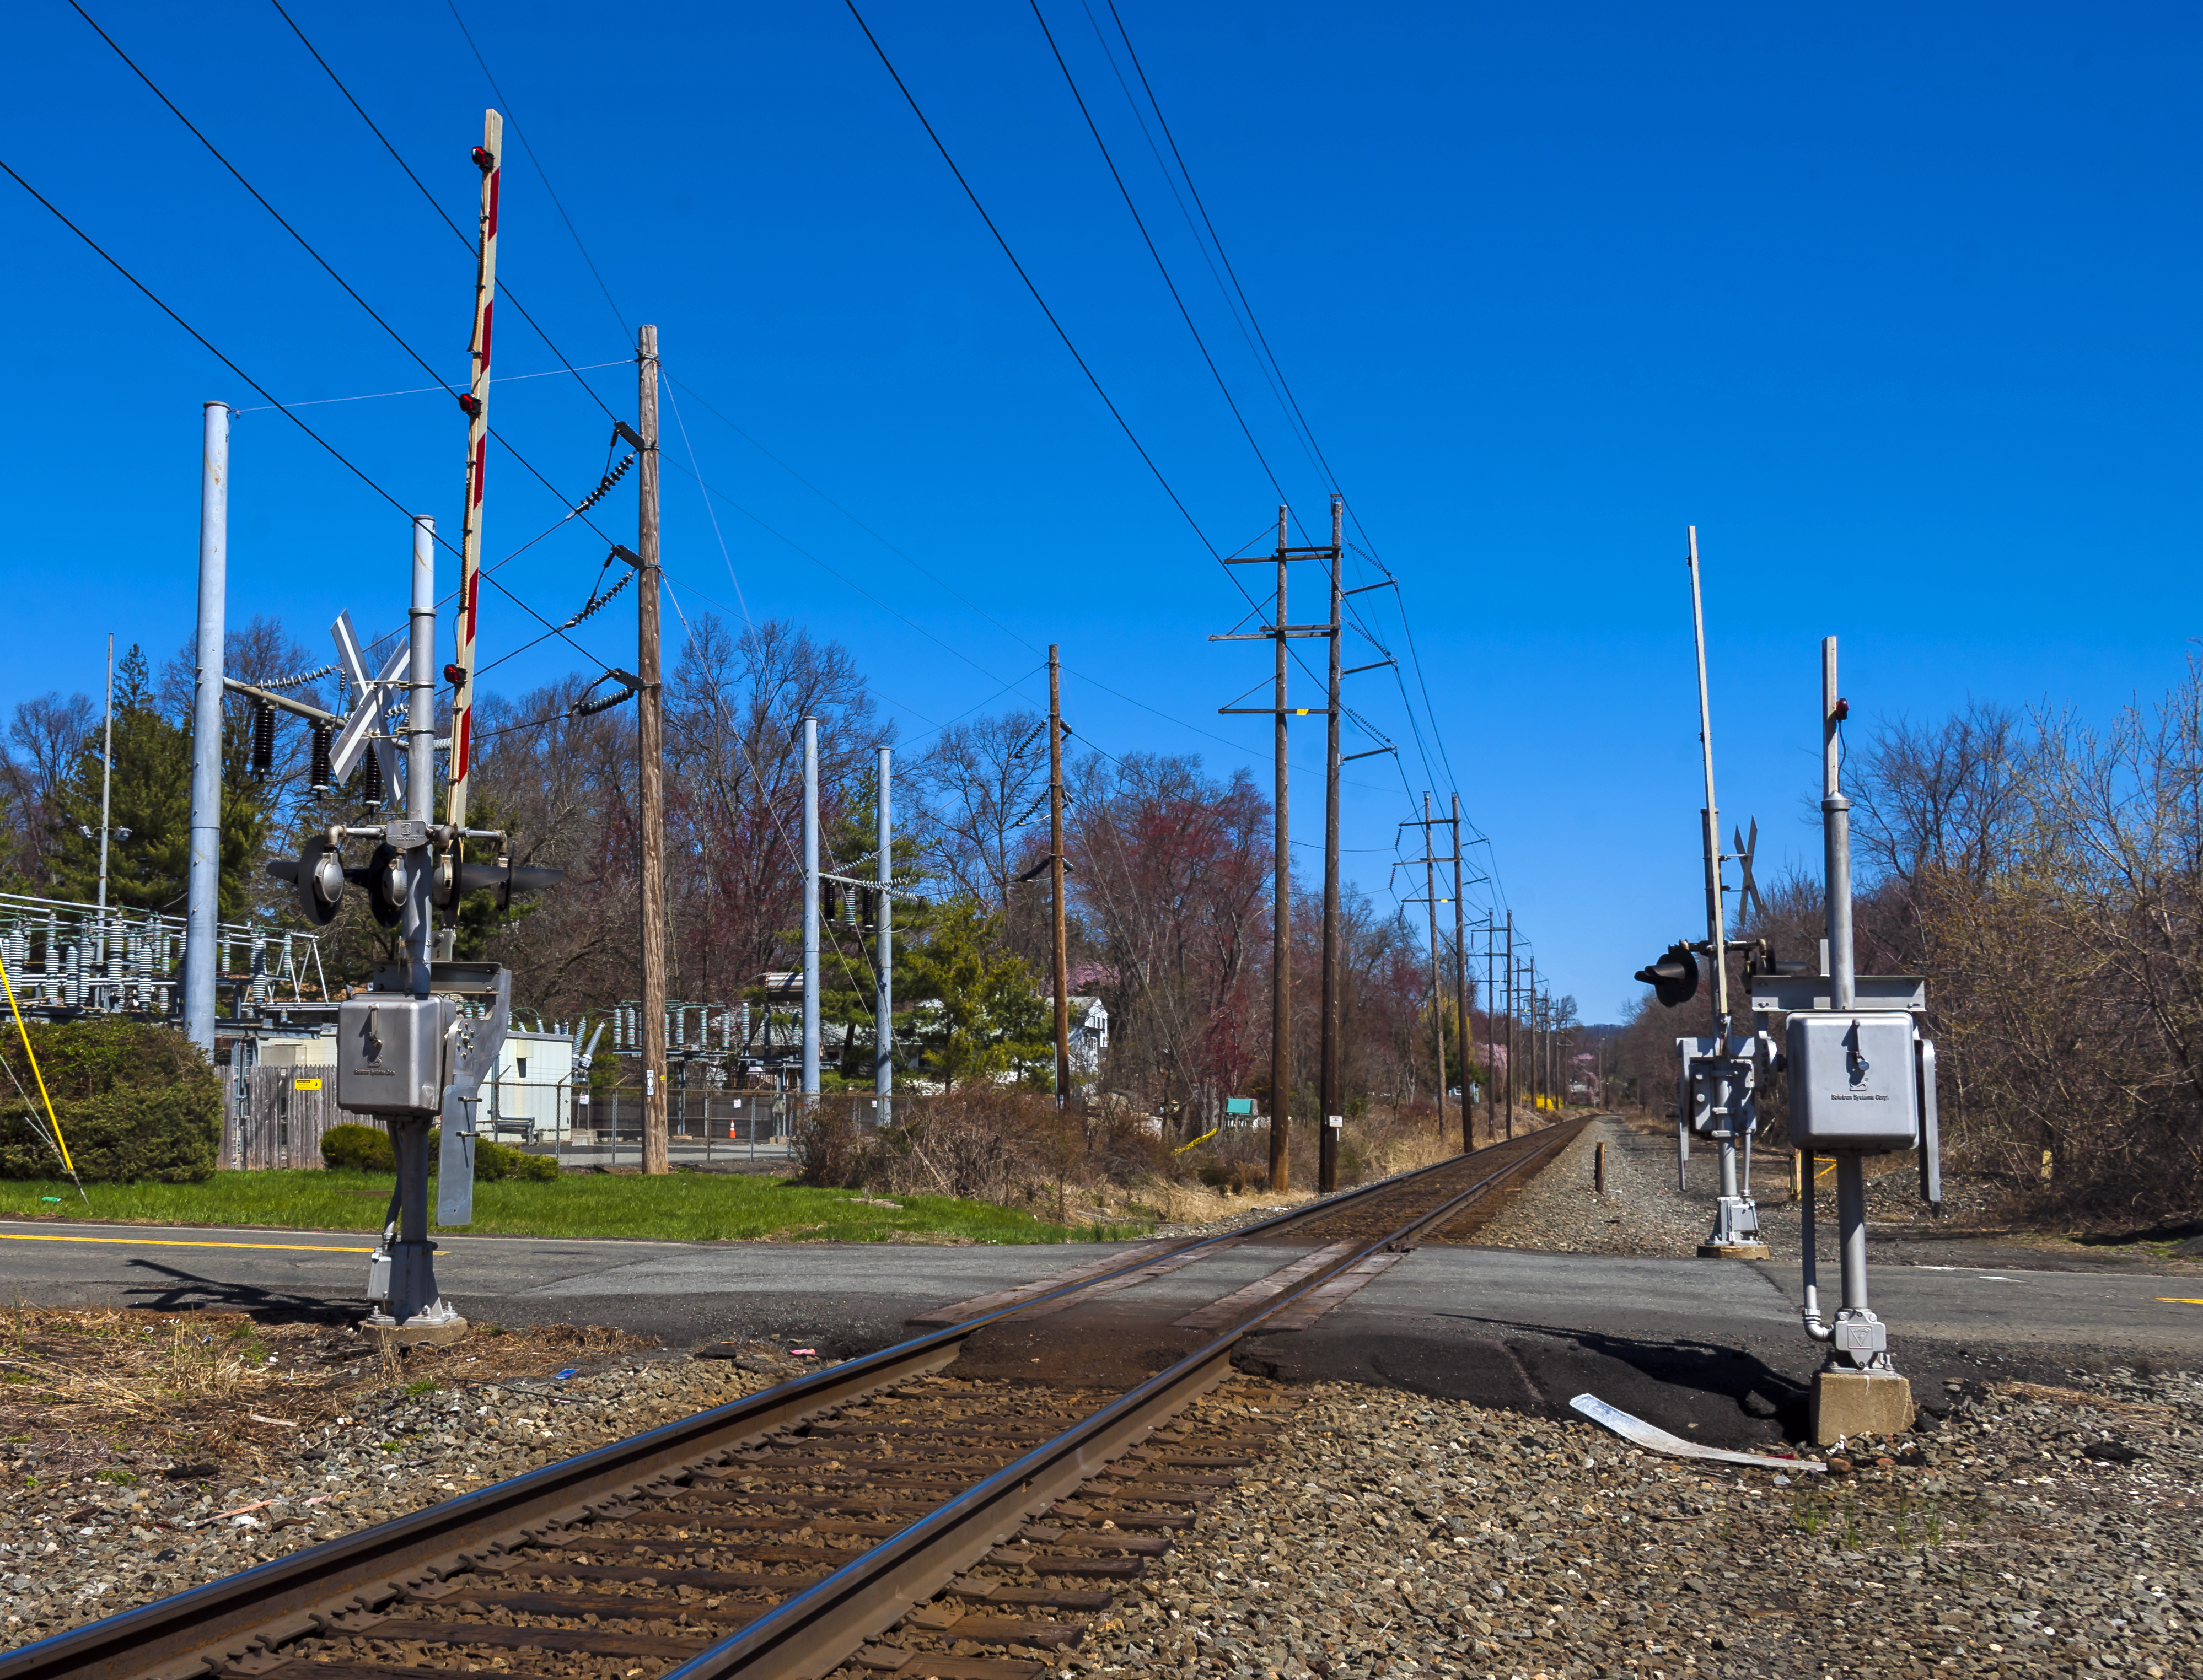 Gilchrest Road, New York crossing accident - Wikipedia